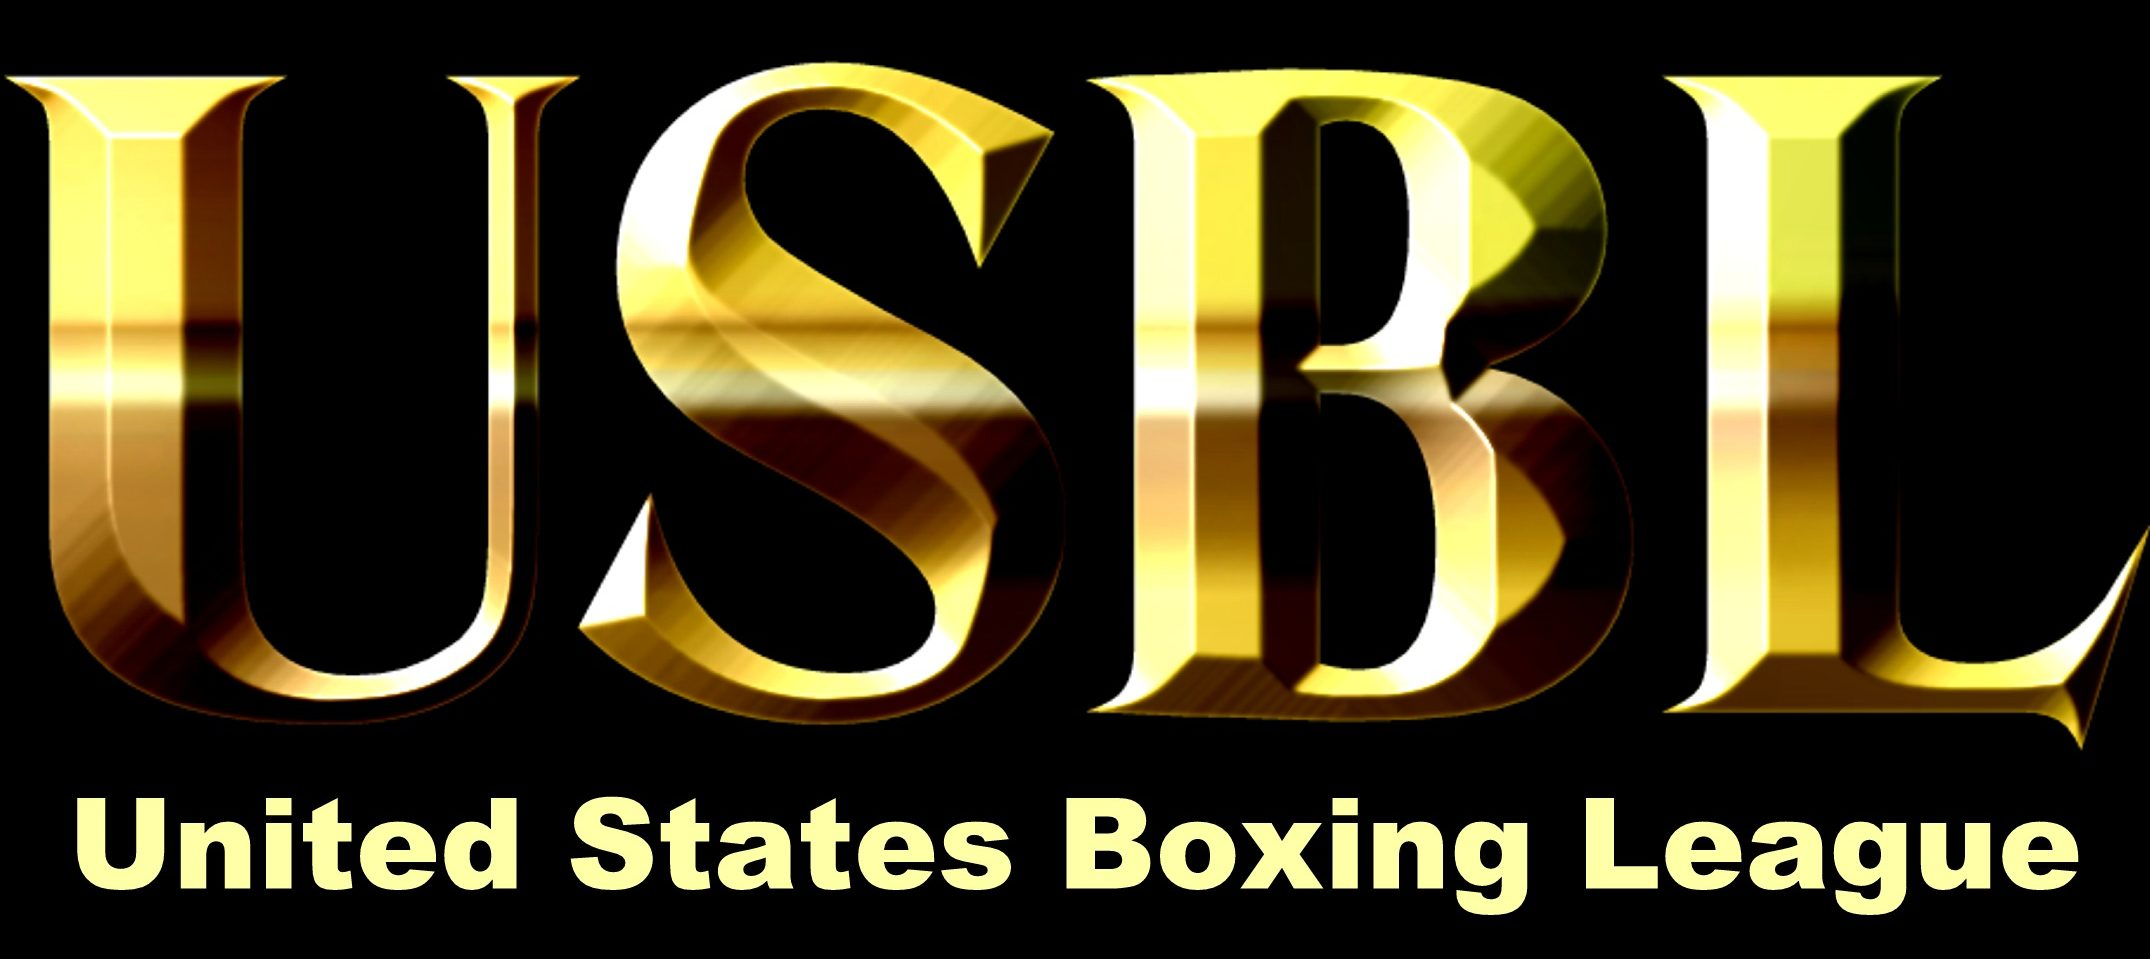 United States Boxing League